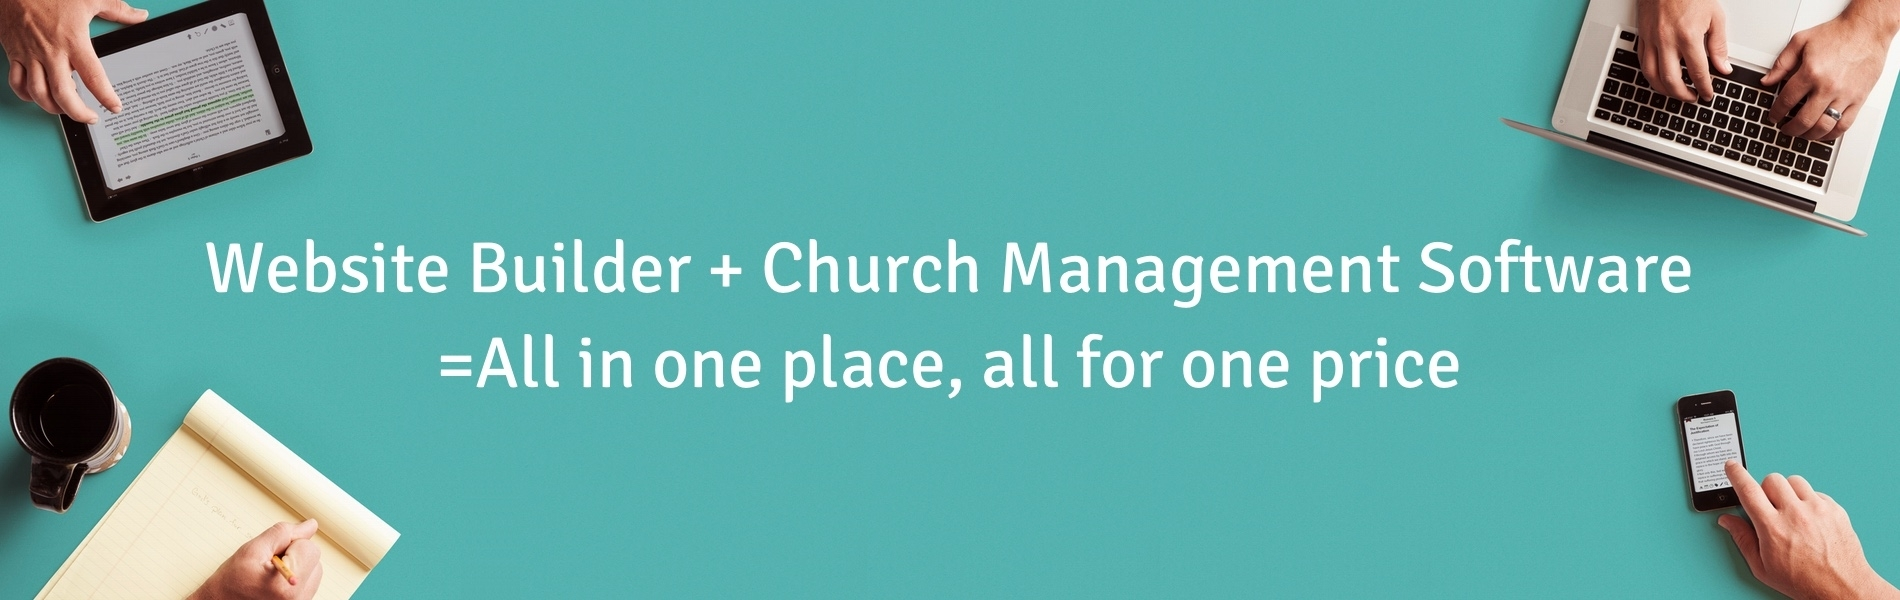 Website Builder and Church Management Software: all in one place, all for one price.